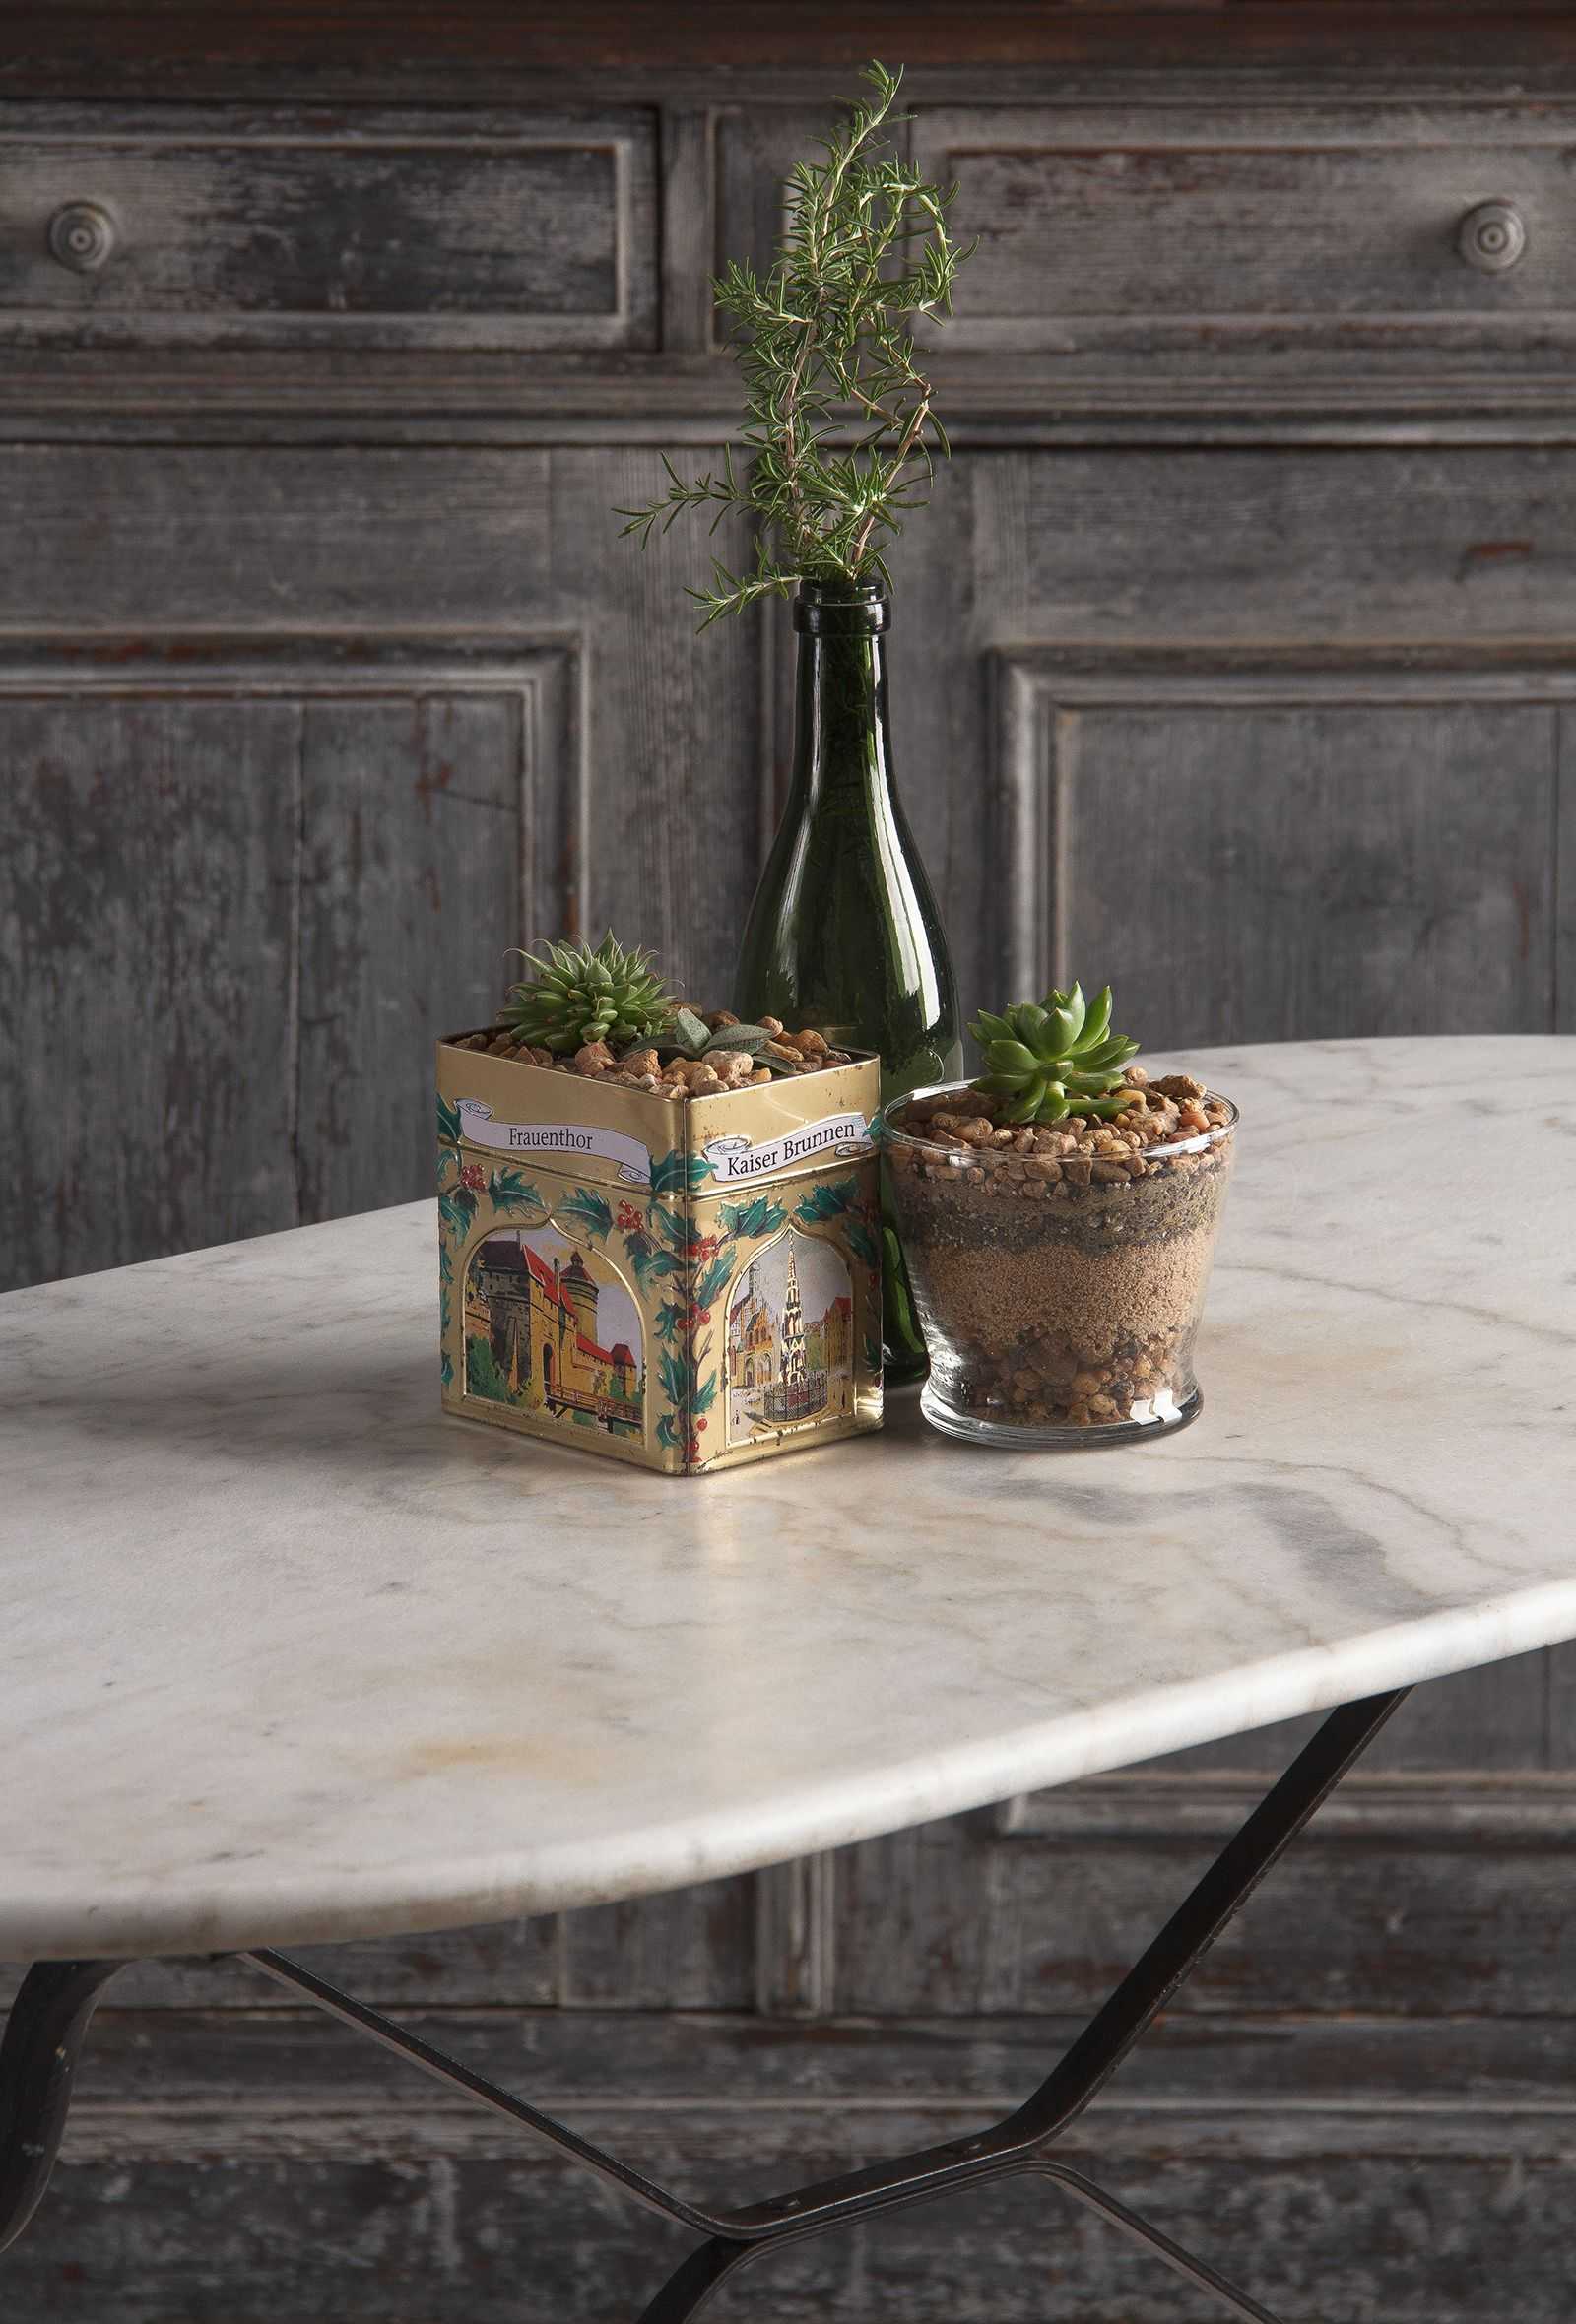 Beautiful table centerpiece for the home. Using vintage pieces as unique planters and vases showcases personal style and brings history into a new home!   French Bistro Table with Iron Base and Oval Marble Top, 1940s Vintage Vinegar Bottle #vignettestyling #interiordesignideas #antiquedecor #tabledesign #indoorplants #centerpiecesforparty #vintagevinegarbottle